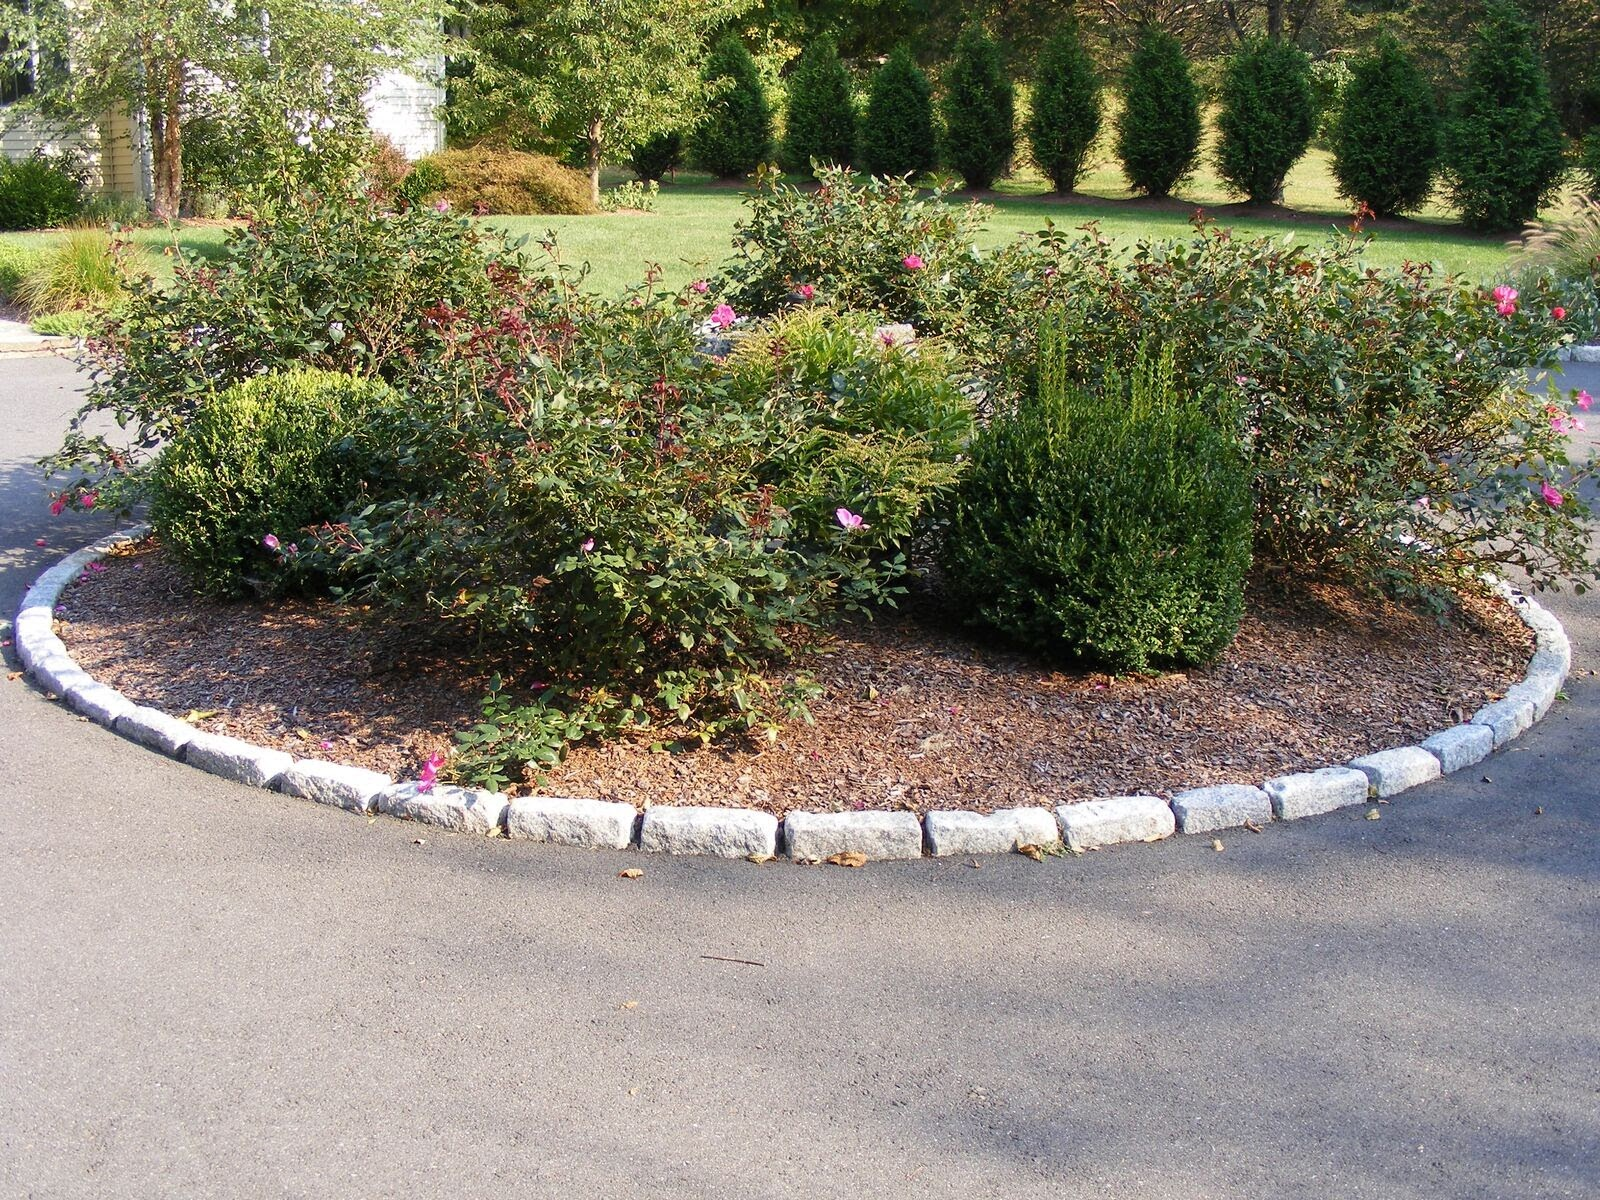 Standard granite cobblestones edge the planter bed in the center of a driveway